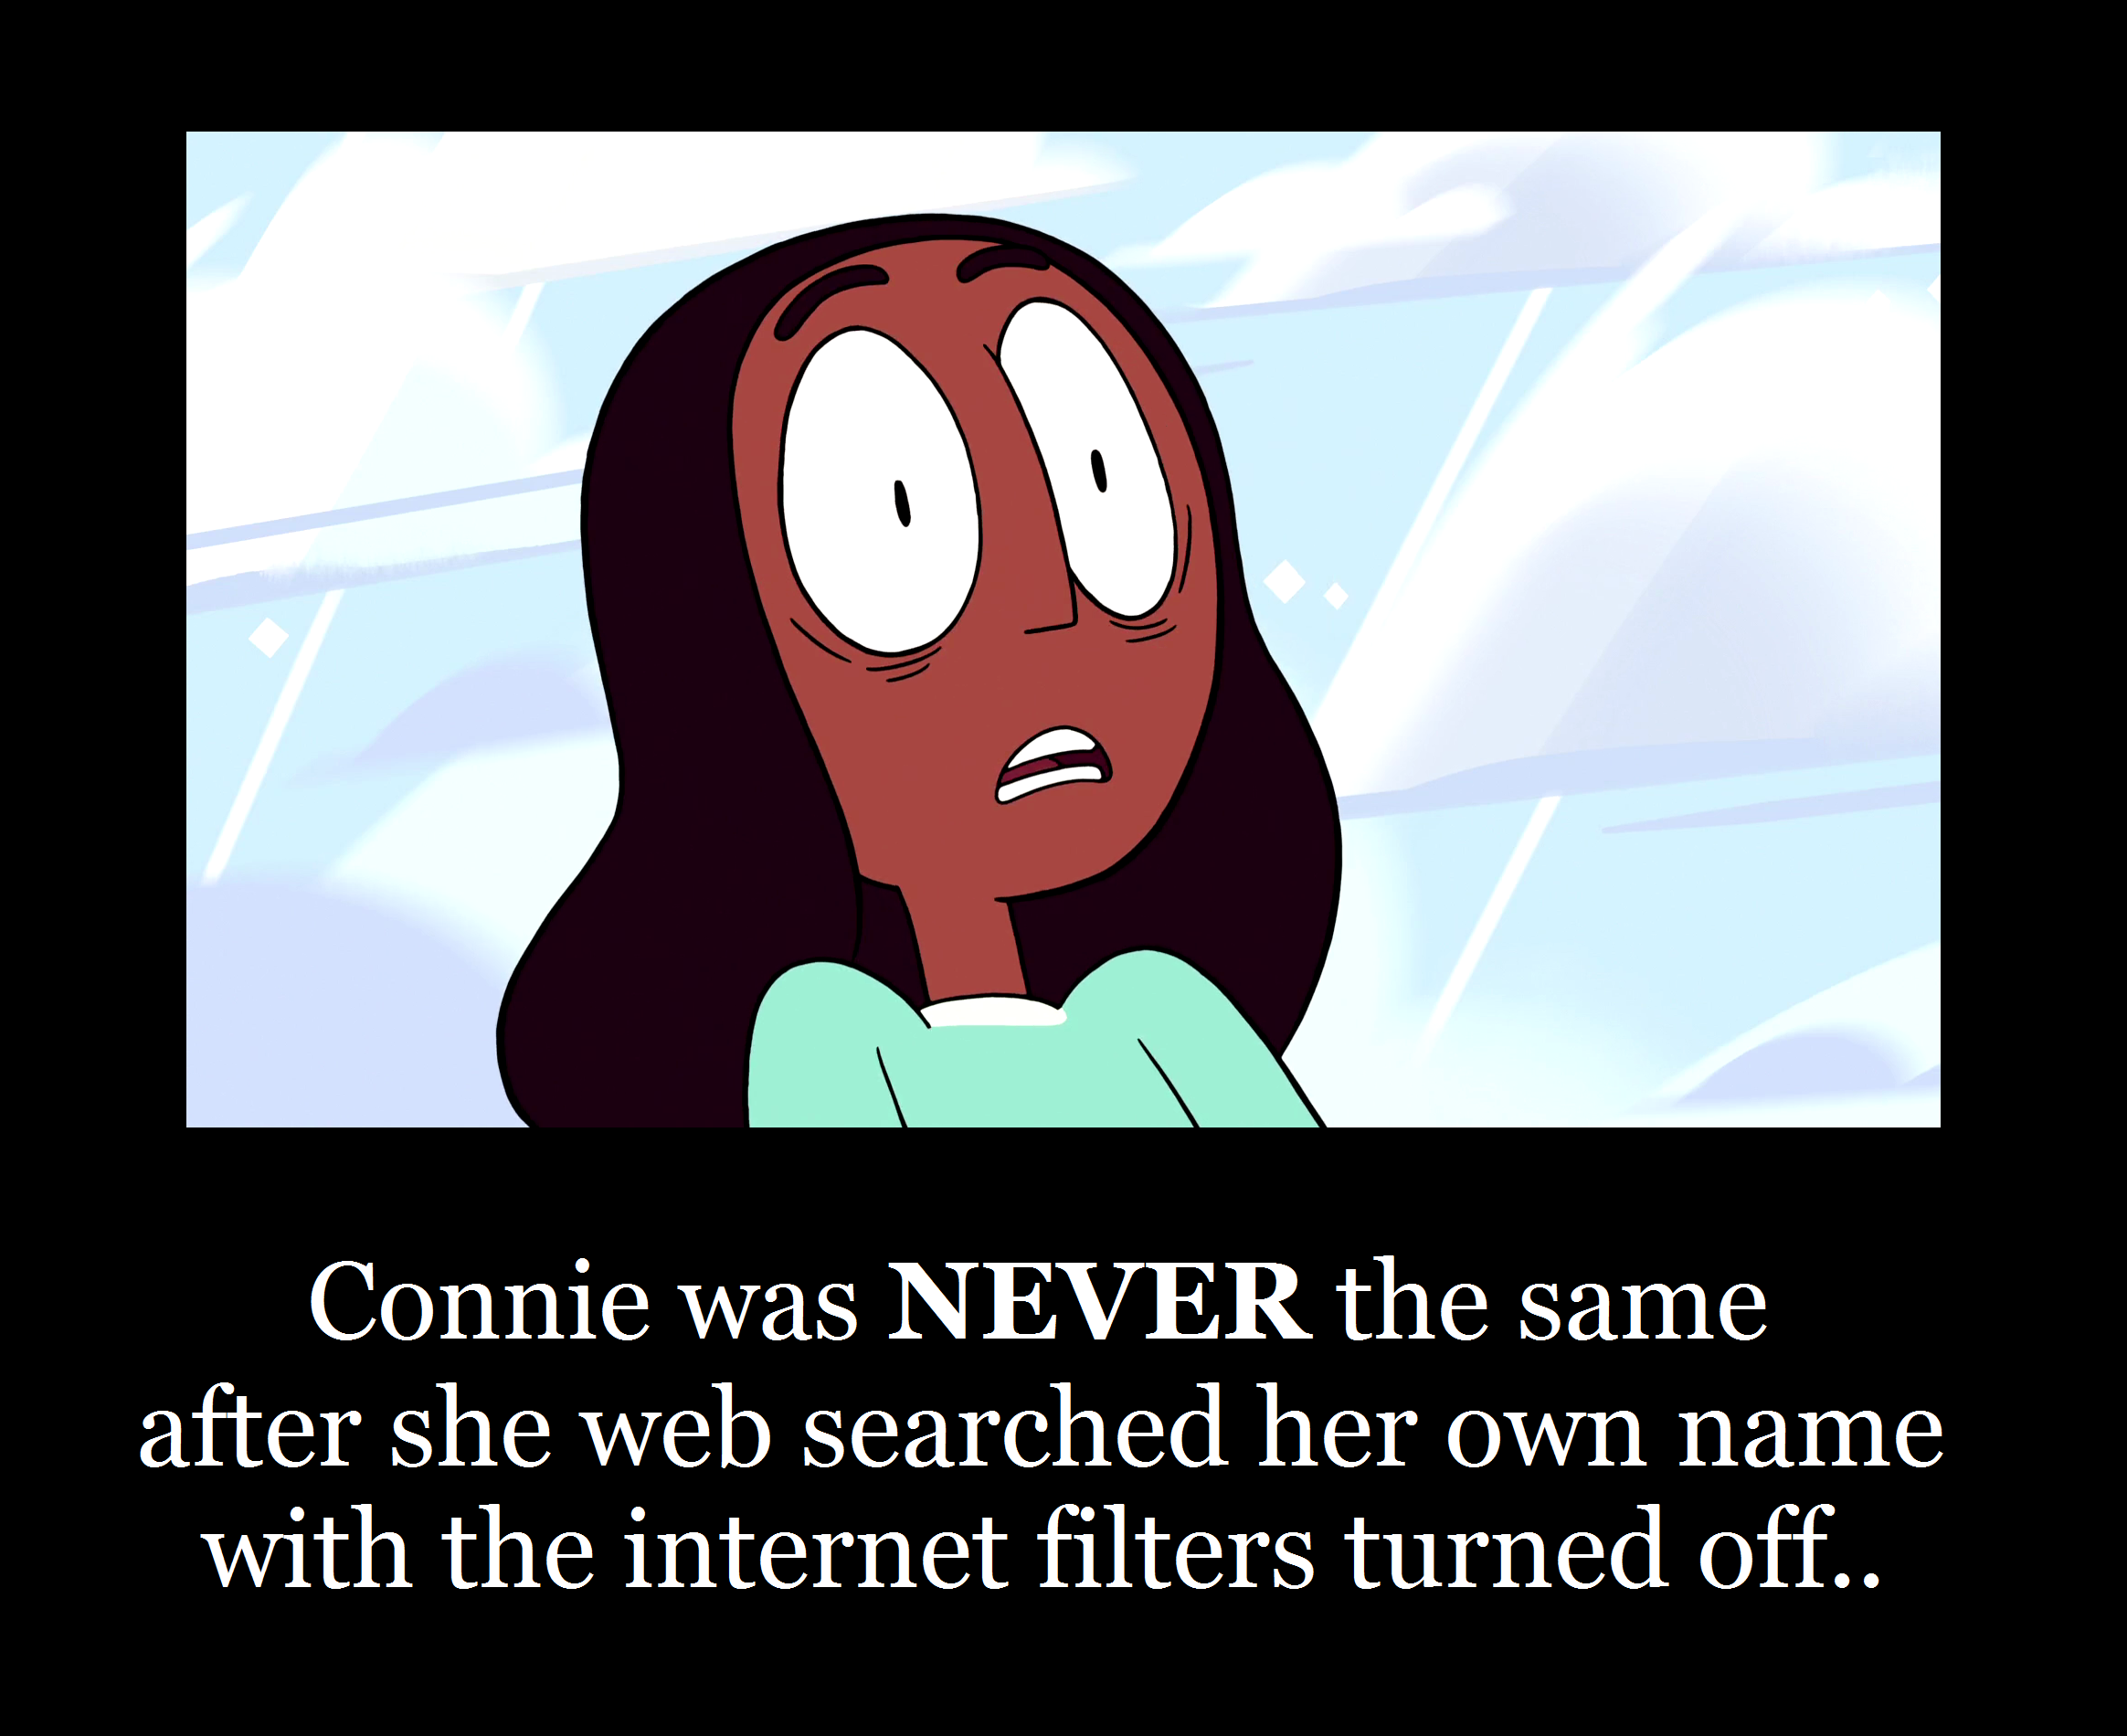 connie_and_the_internet_by_metroxlr99 dagxjgo connie and the internet by metroxlr on deviantart